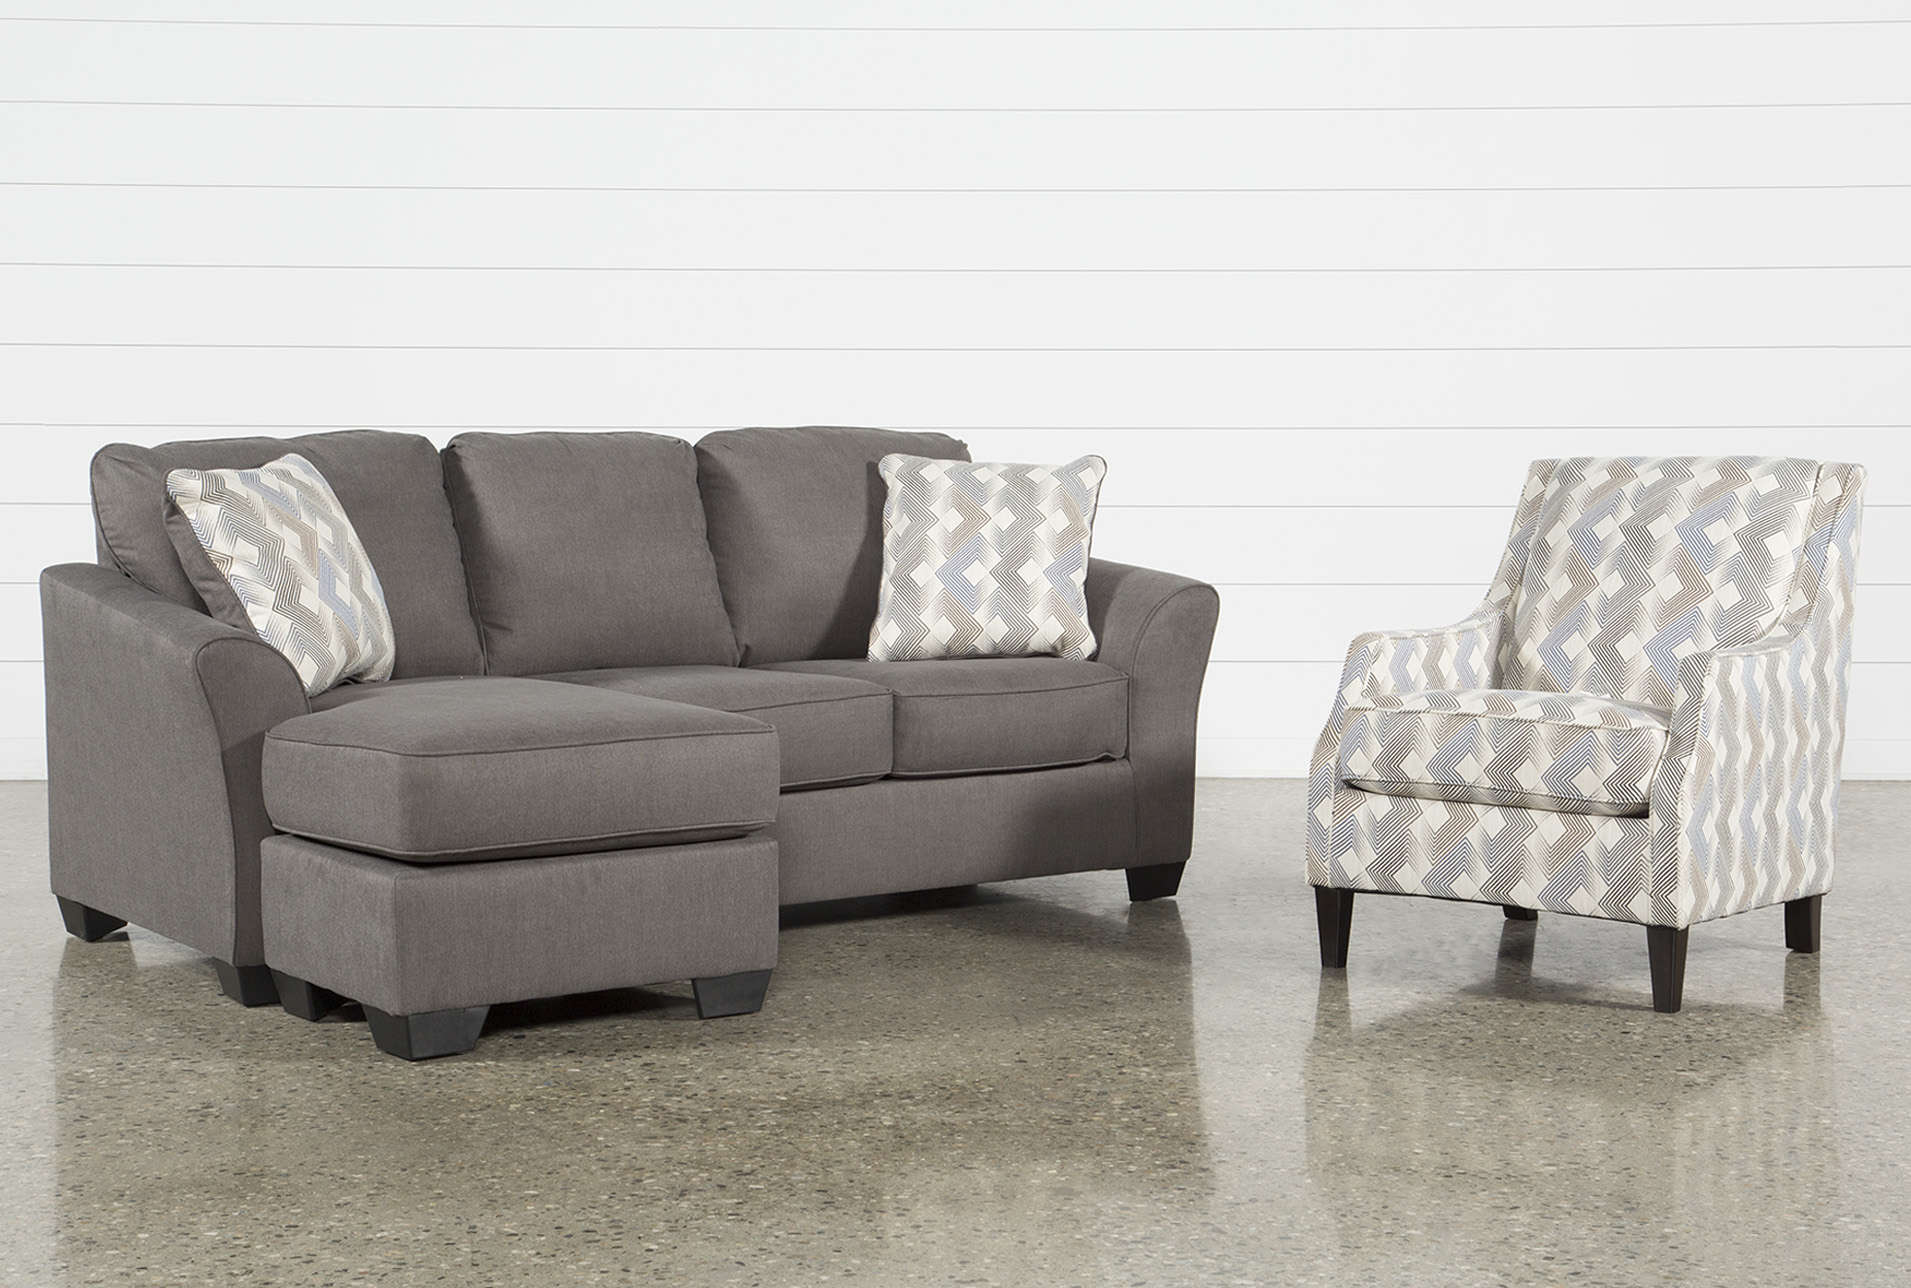 Elegant Tucker 2 Piece Living Room Set With Queen Sleeper And Accent Chair   360